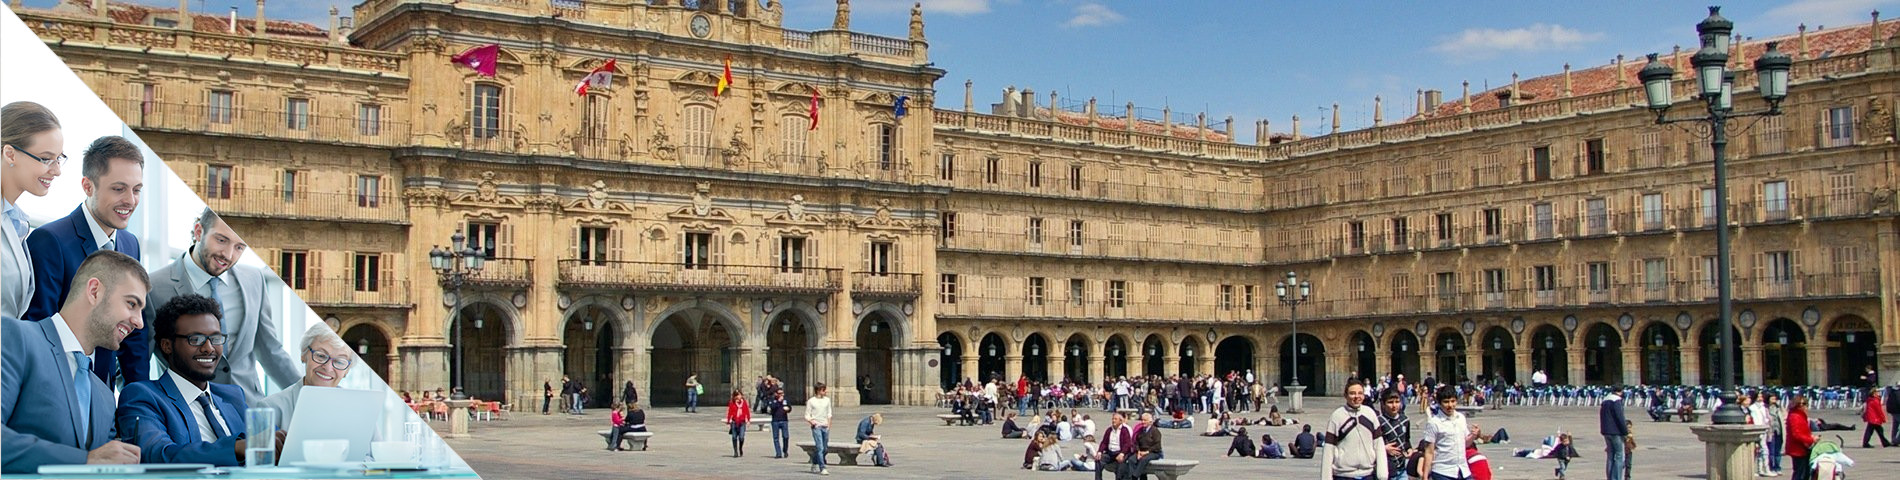 Salamanca - Business Gruppe